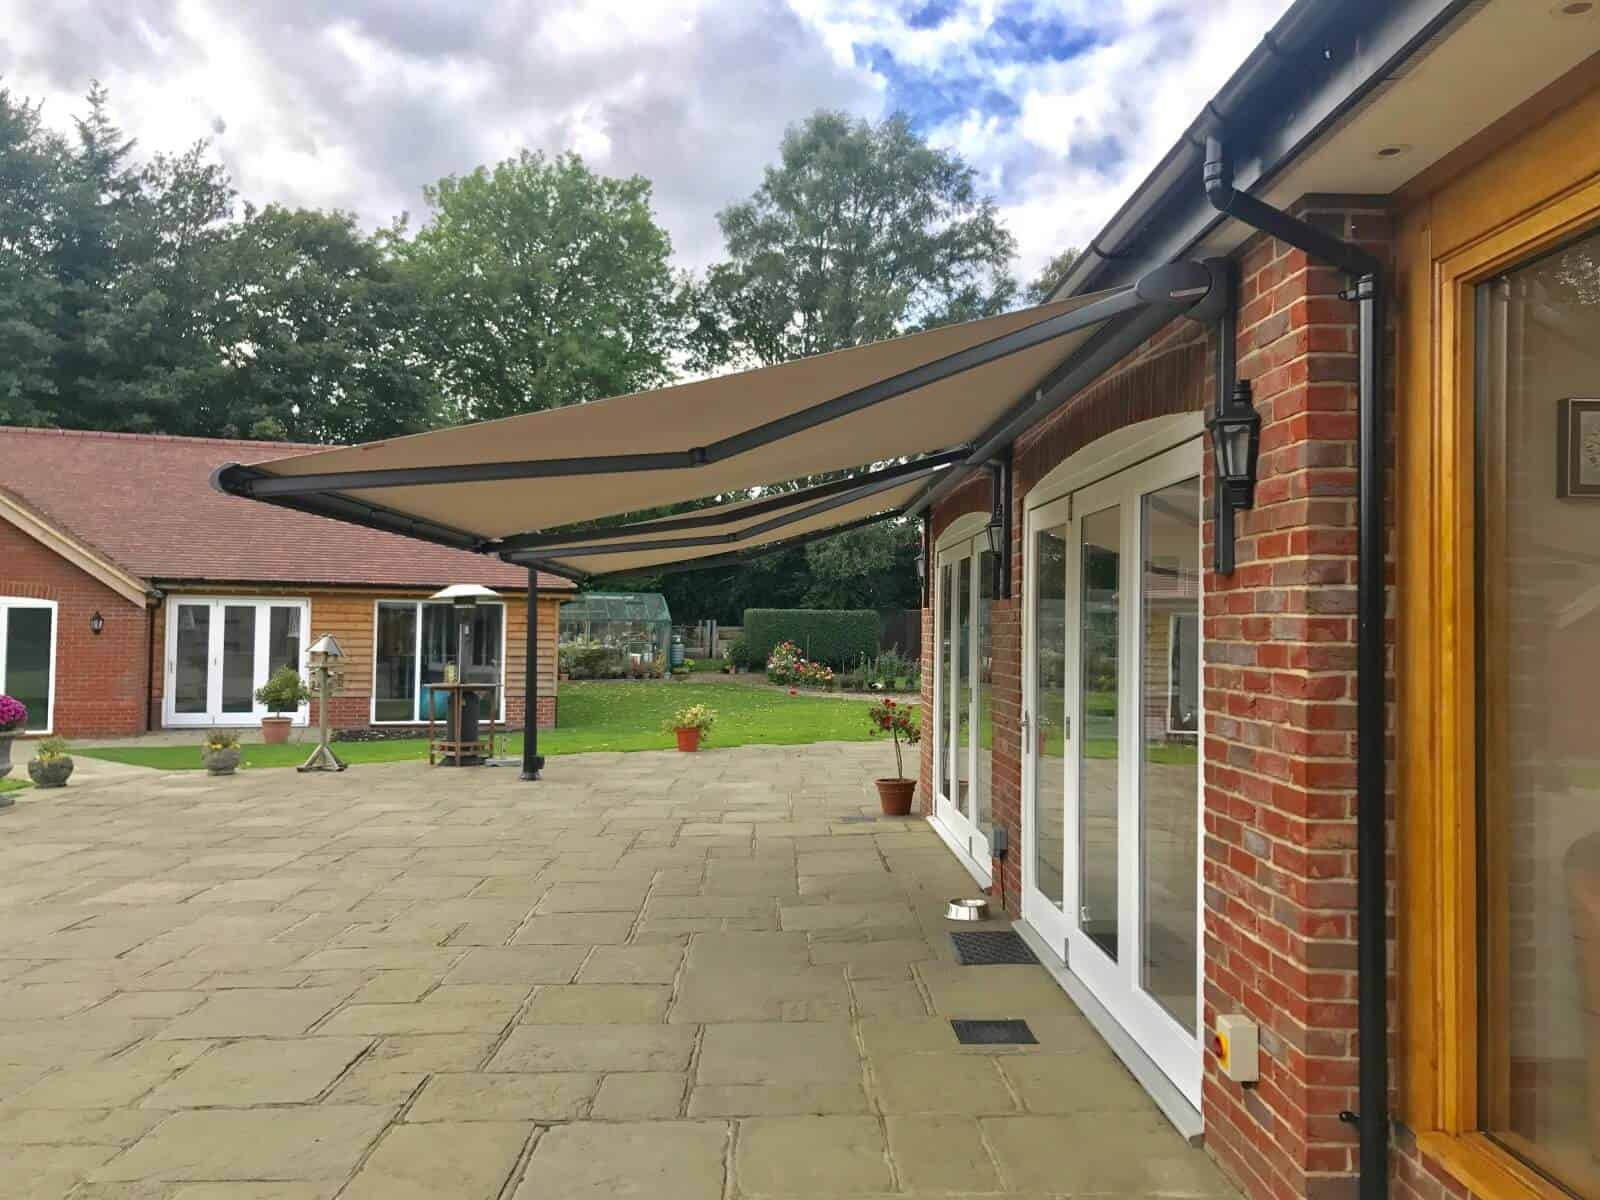 Weinor Cassita II Awning Fitted in New Forest Awningsouth Side View